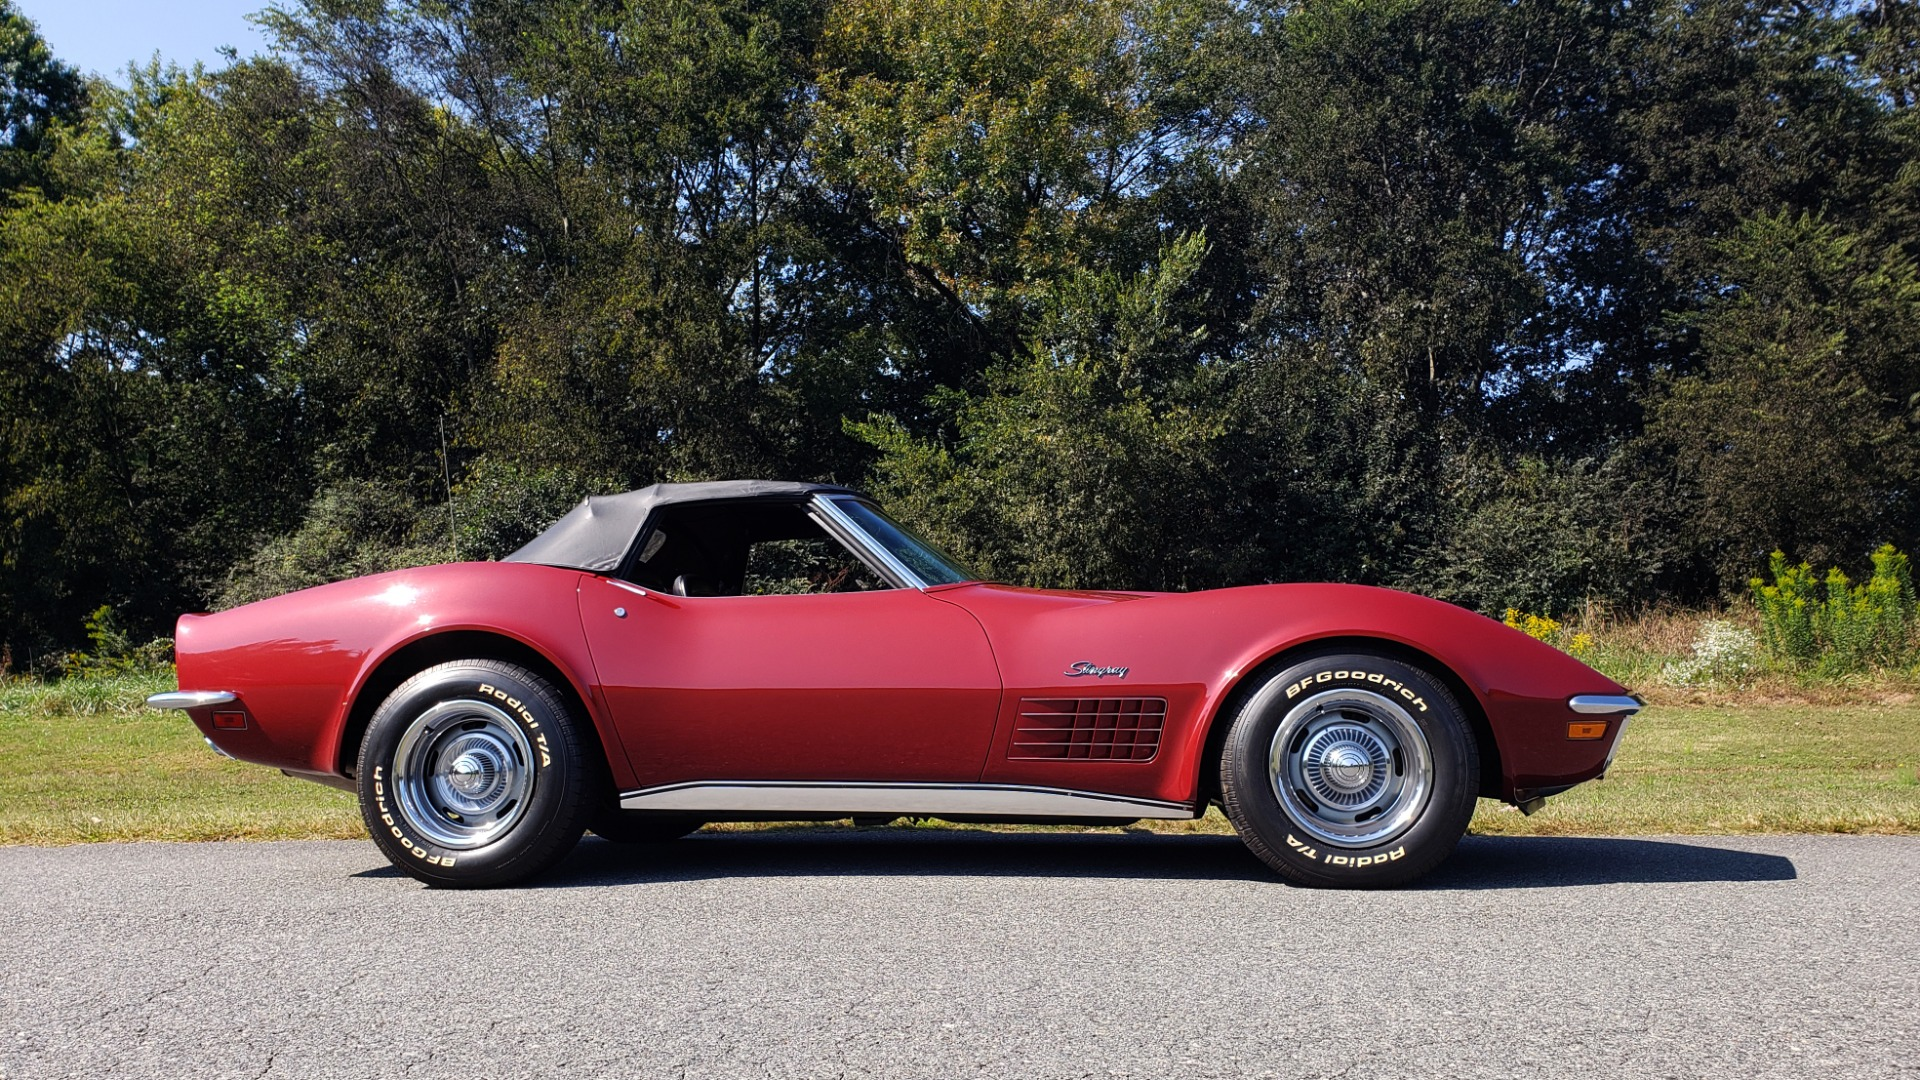 Used 1970 Chevrolet CORVETTE CONVERTIBLE / 454CI V8 / AUTO / NEW BLACK TOP / NUMBERS MATCH for sale $50,499 at Formula Imports in Charlotte NC 28227 14